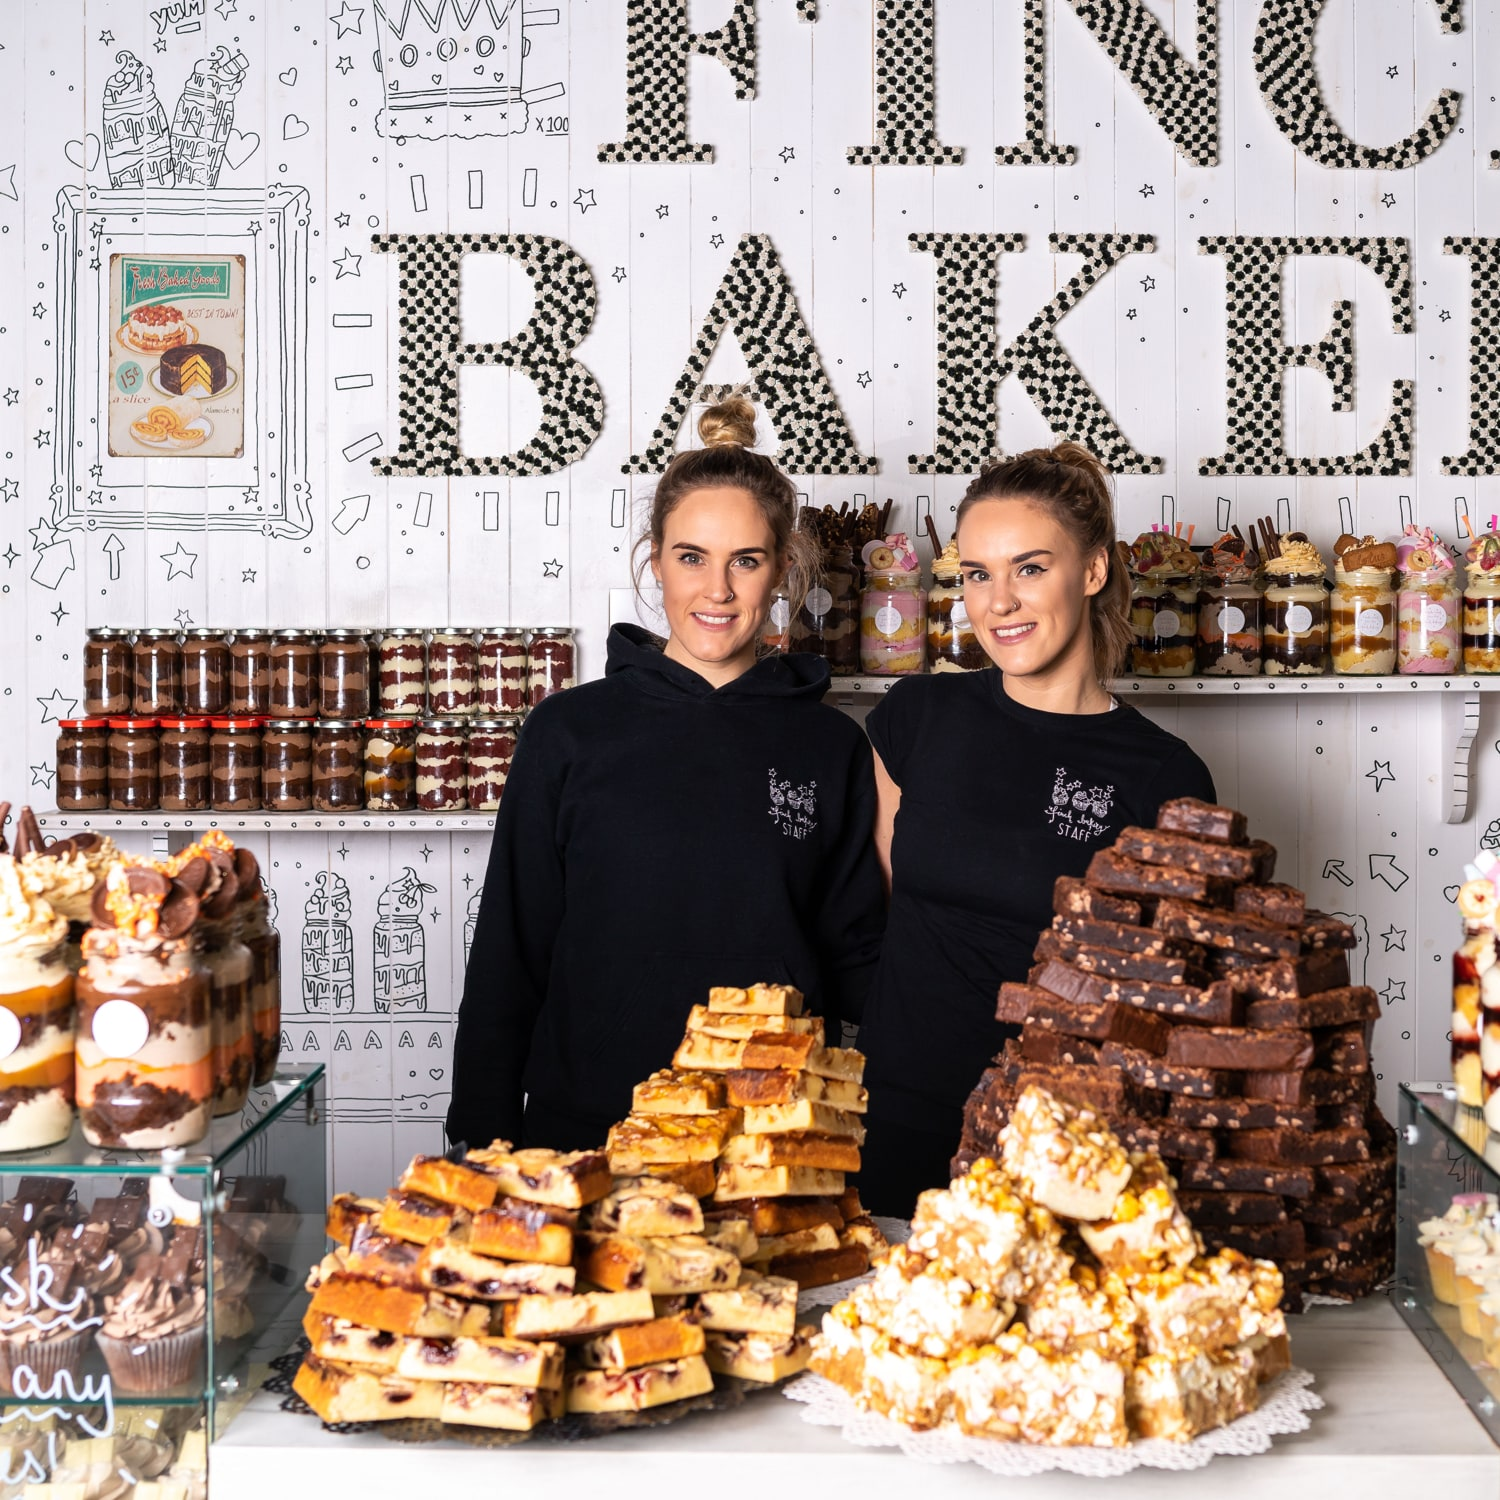 Finch Bakery